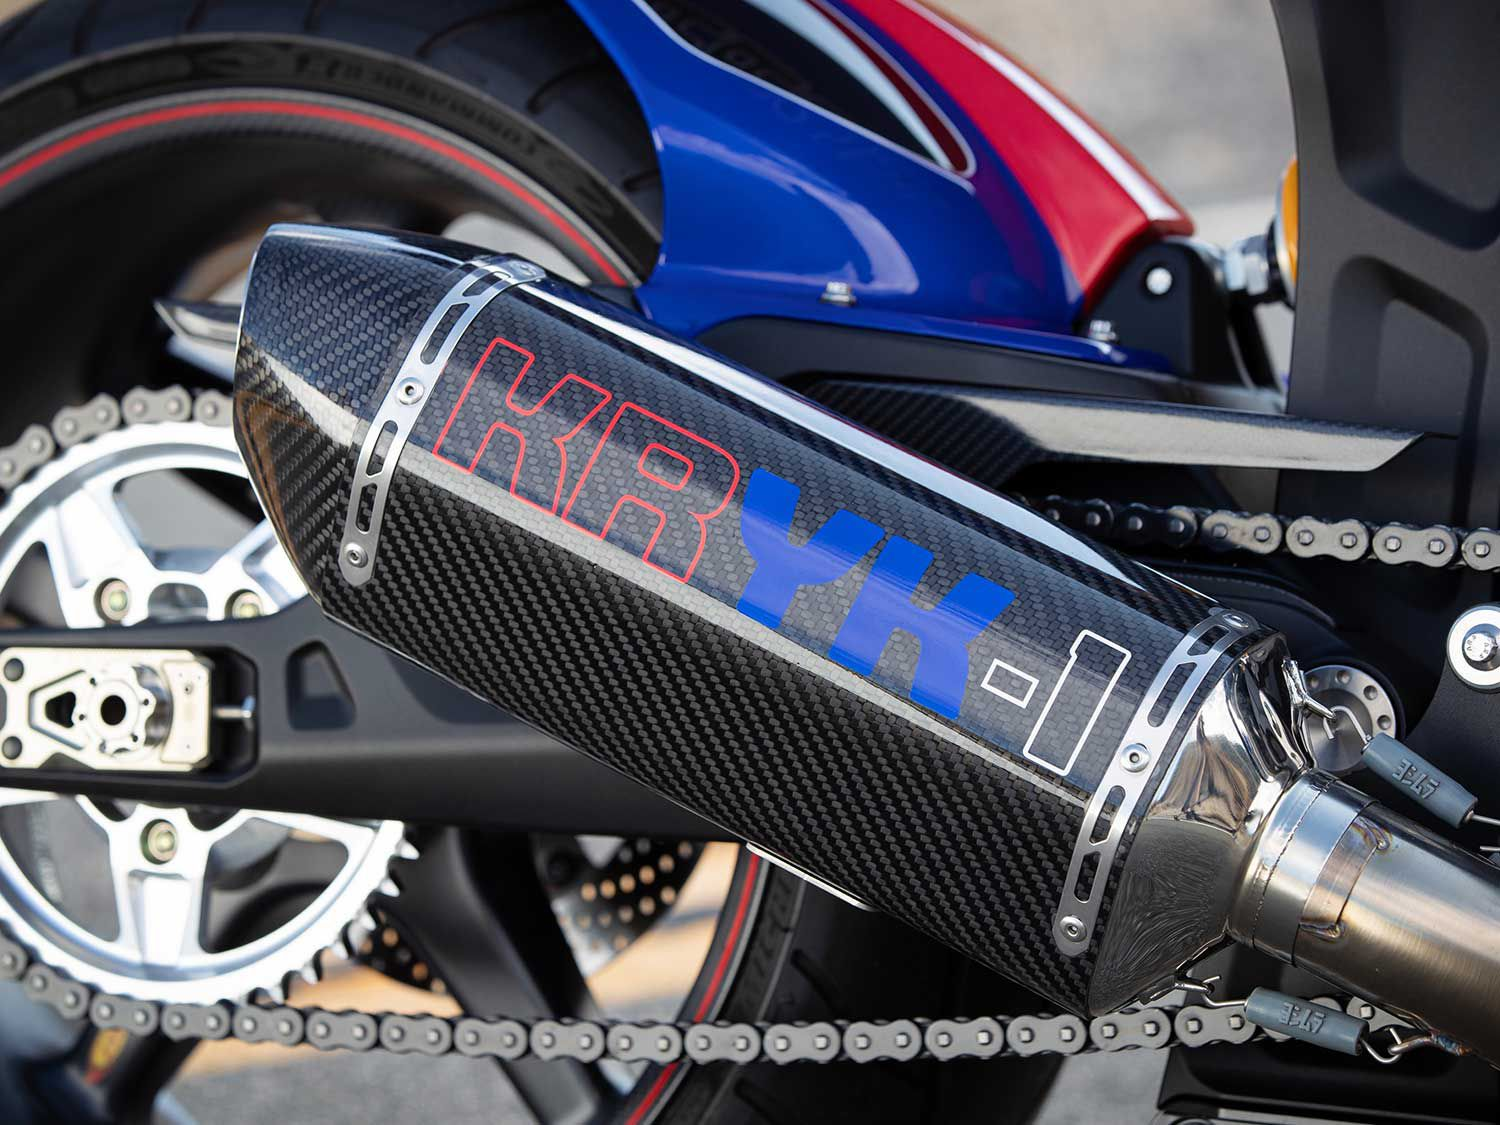 Arch worked with Yoshimura to develop the carbon-fiber muffler. KRYK? That stands for Yves Klein, who patented Yves Klein International Blue, the color this bike is meant to recreate.